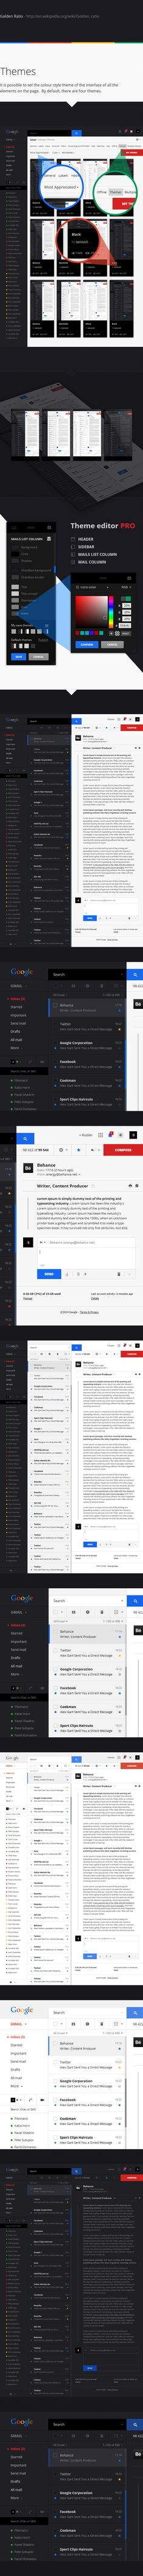 Gmail Redesign Concept by Ruslan Aliev, via Behance Dashboard Design, App Ui Design, User Interface Design, Creation Web, Google Material Design, Information Architecture, User Experience Design, Ui Web, Application Design